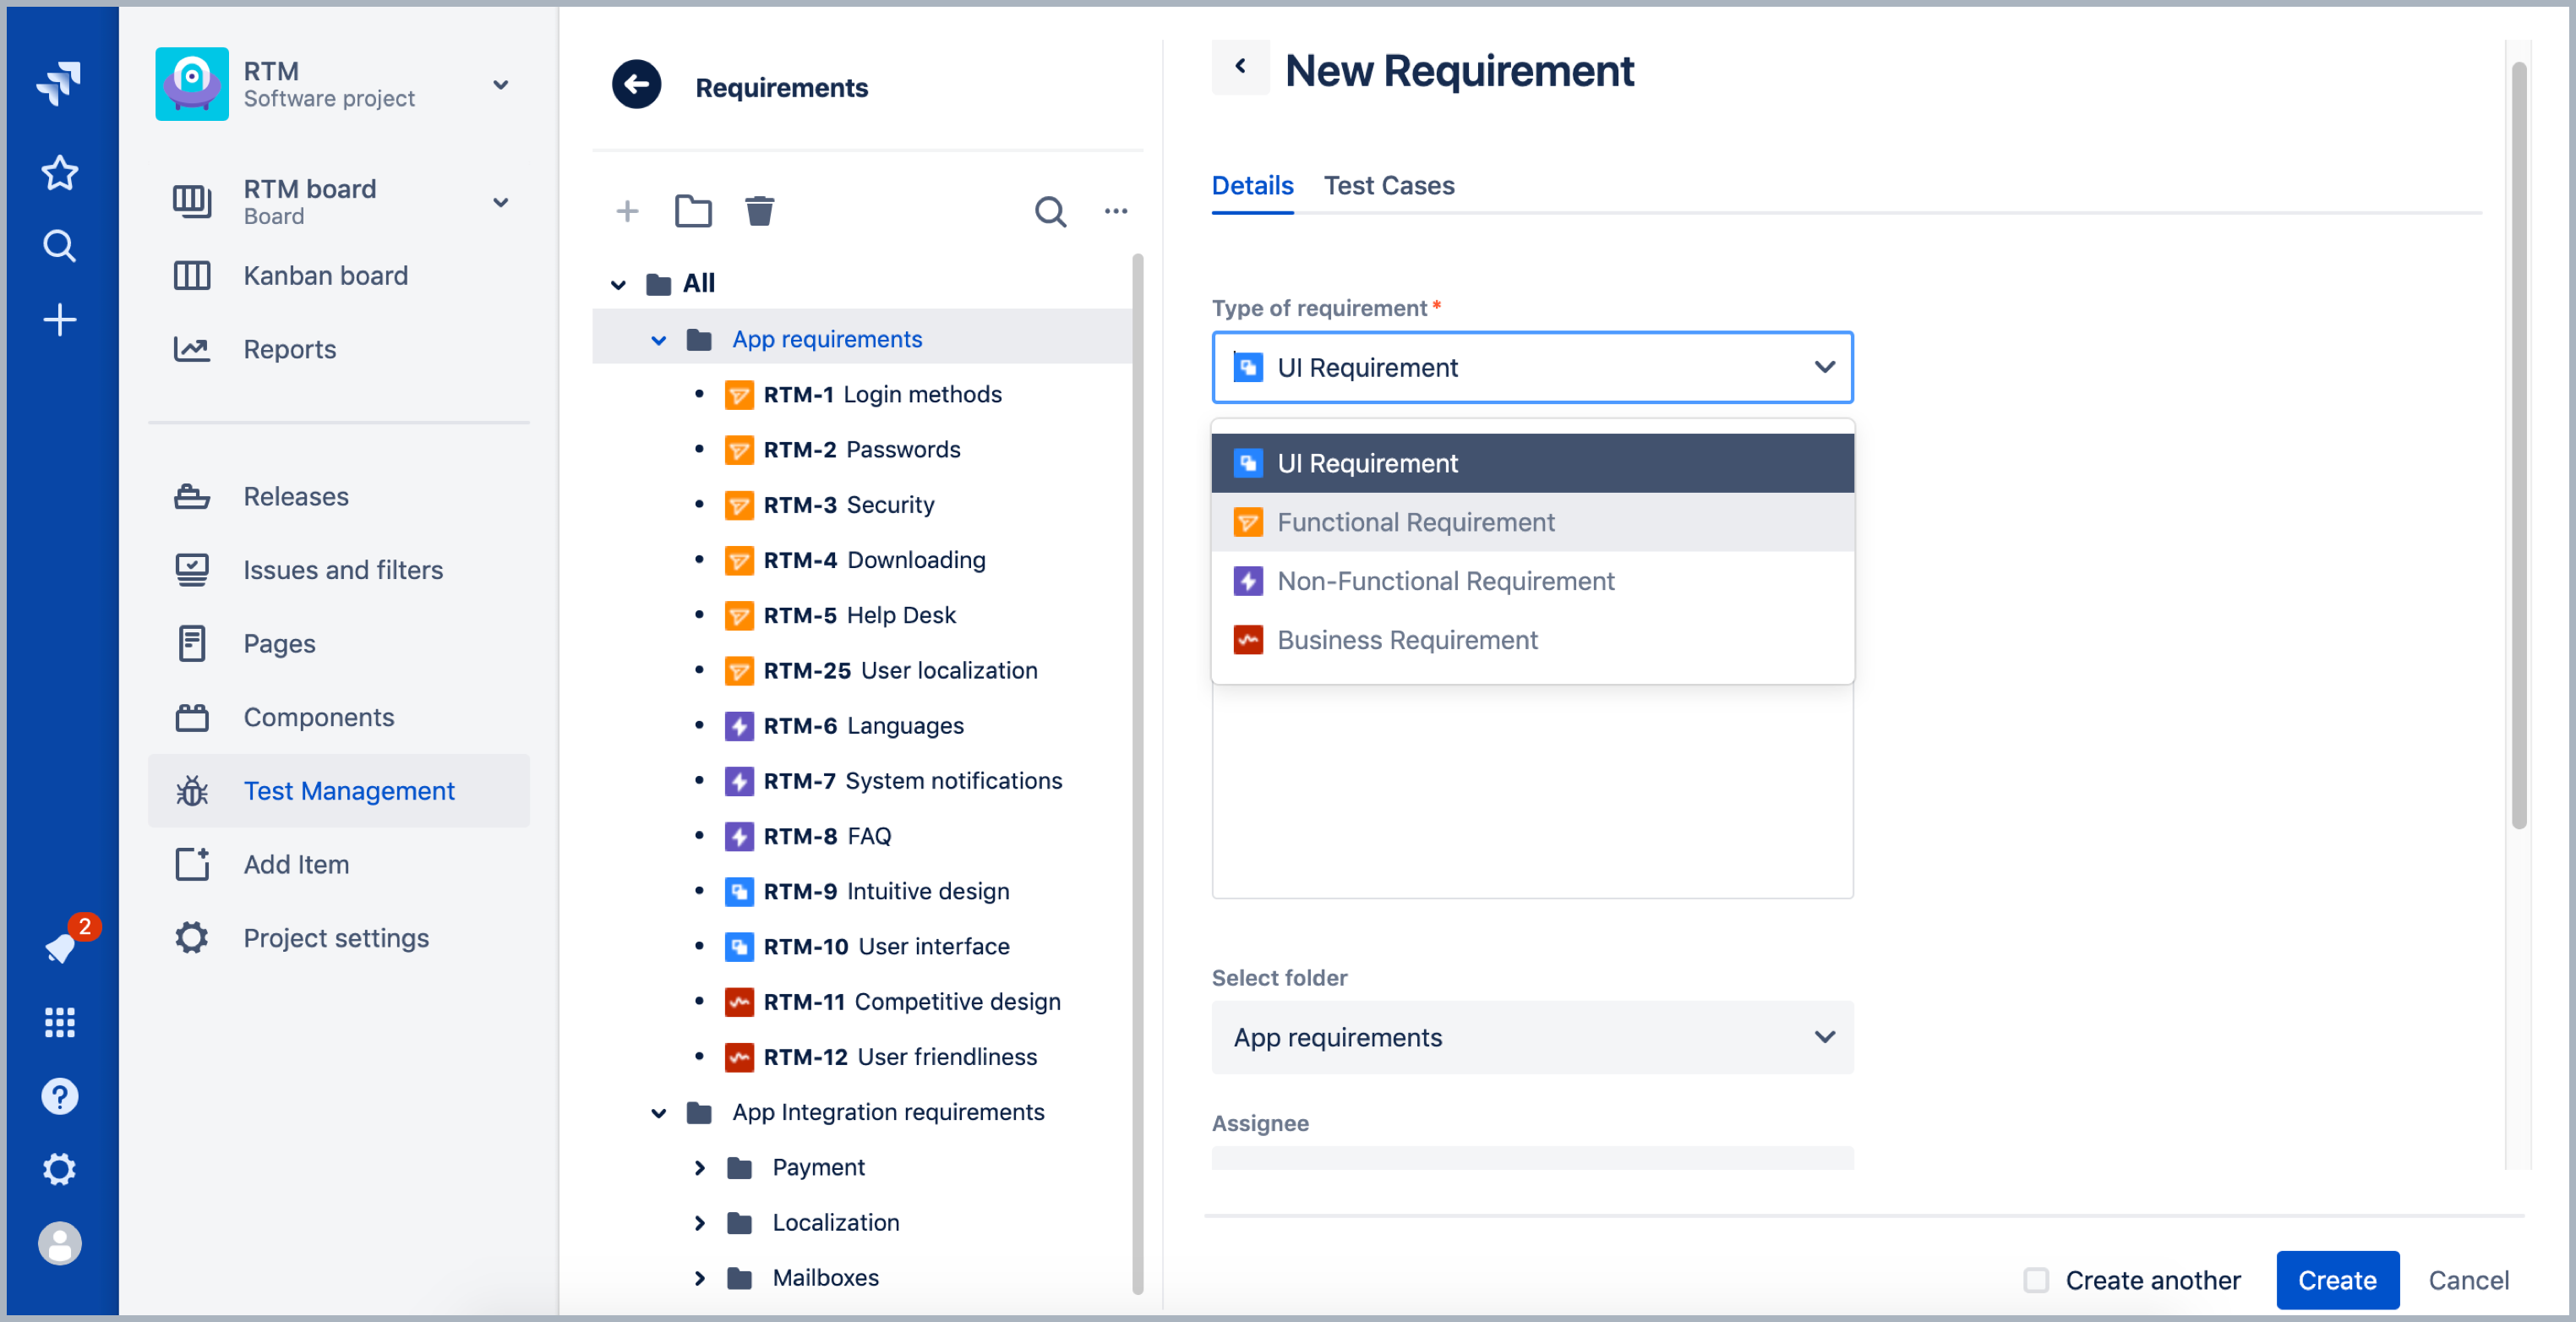 Requirements in RTM for Jira